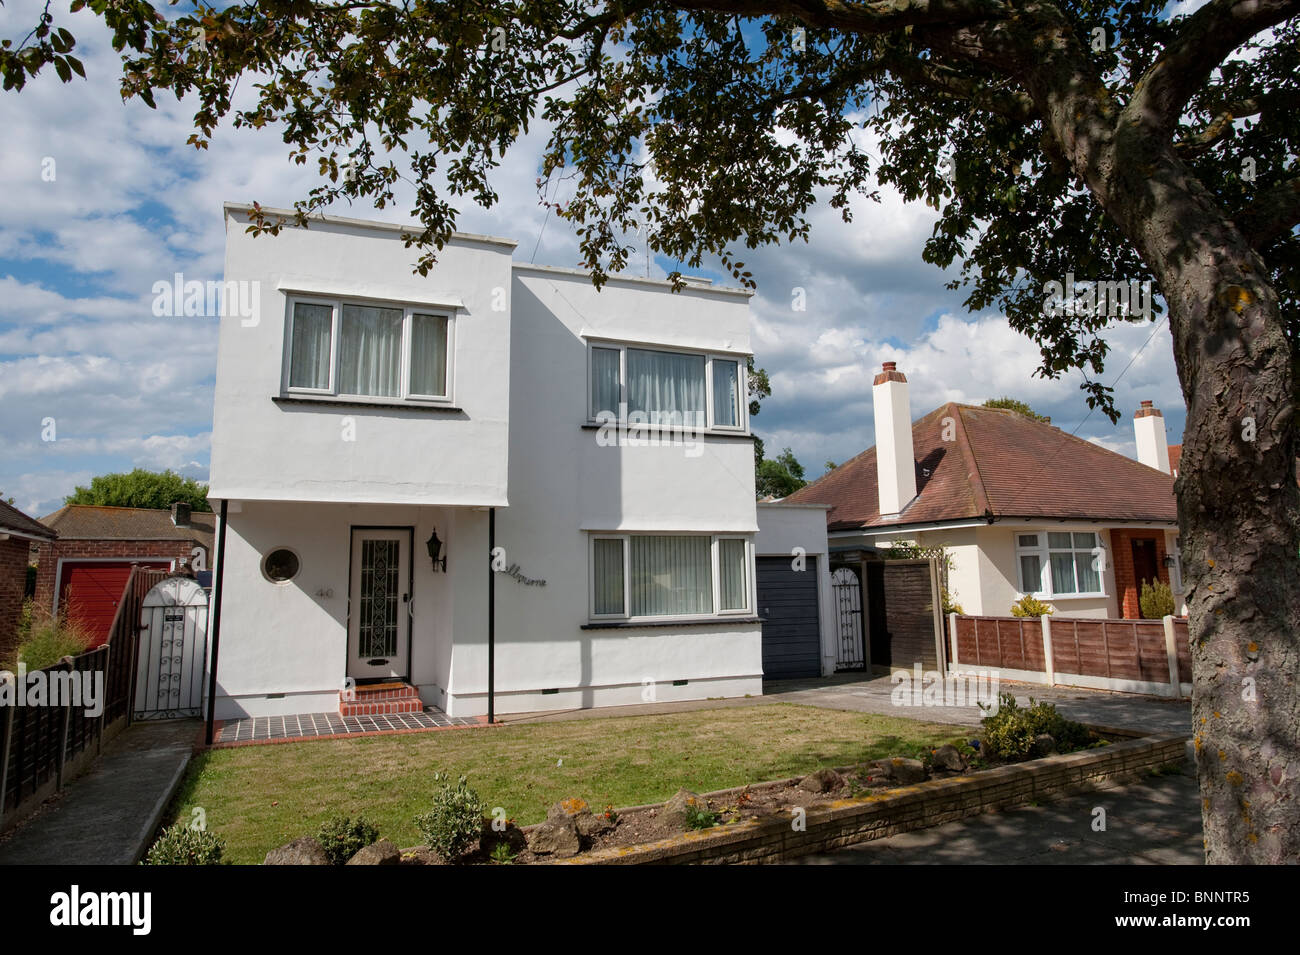 An Art Deco Style House Melbourne No 40 Waltham Way On The Stock Photo Alamy